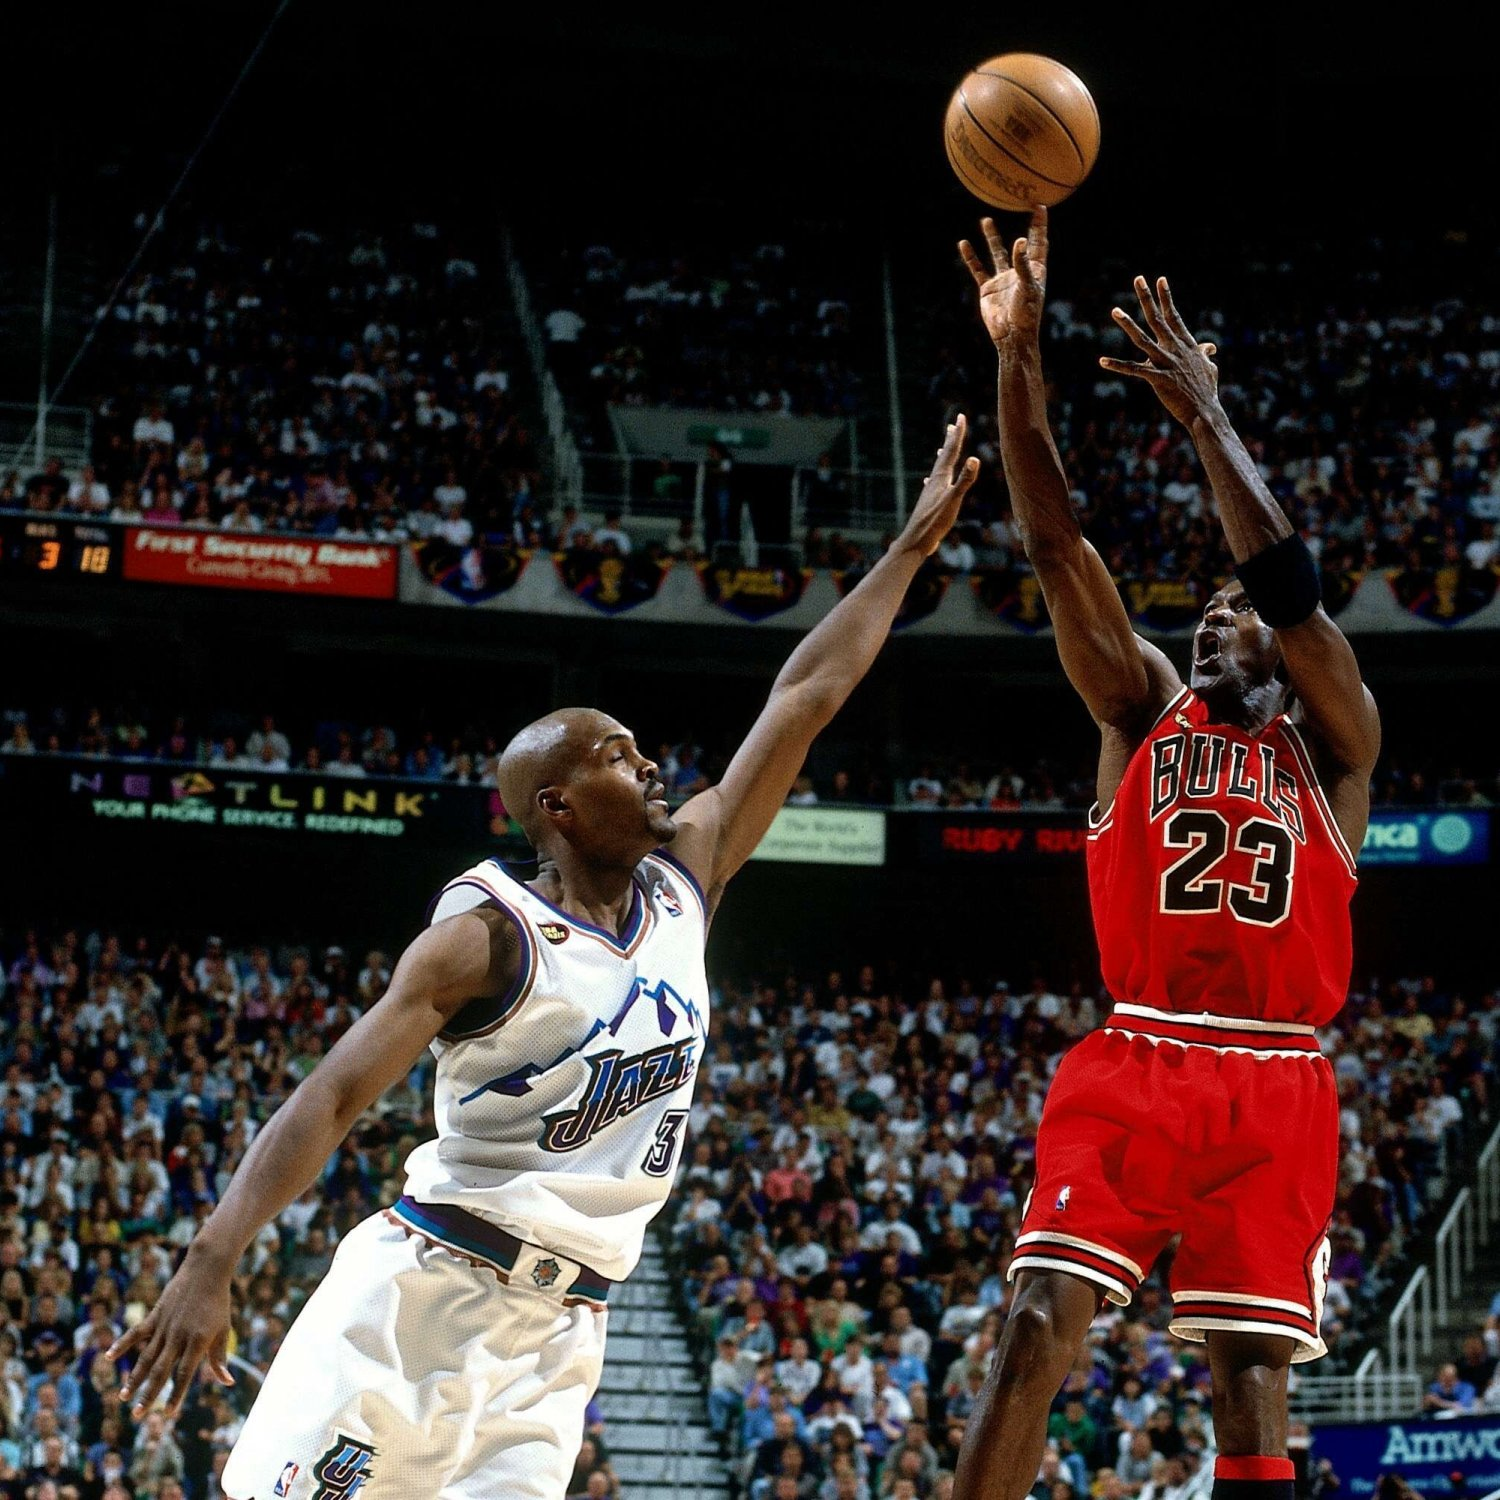 hi-res-75293719-michael-jordan-of-the-chicago-bulls-shoots-a-jump-shot_crop_exact